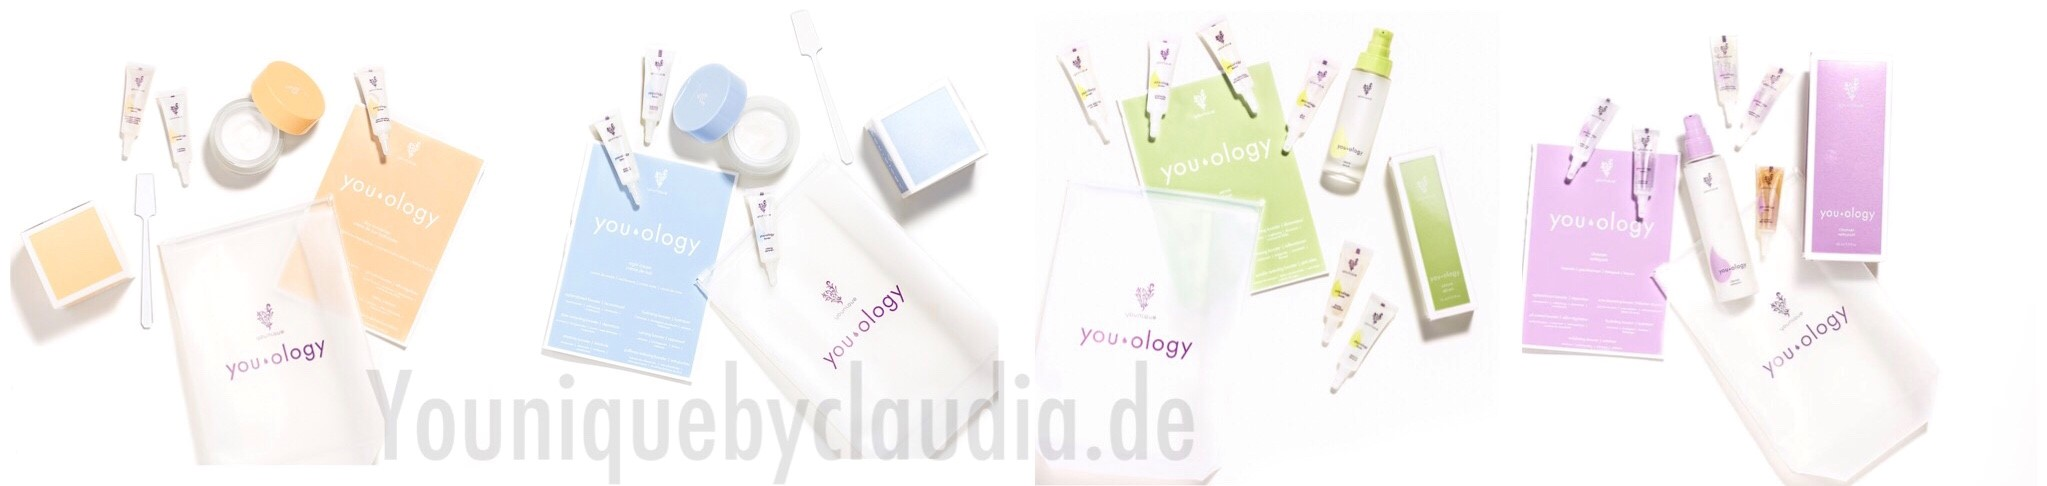 Younique Youology alle Produkte ausgepackt